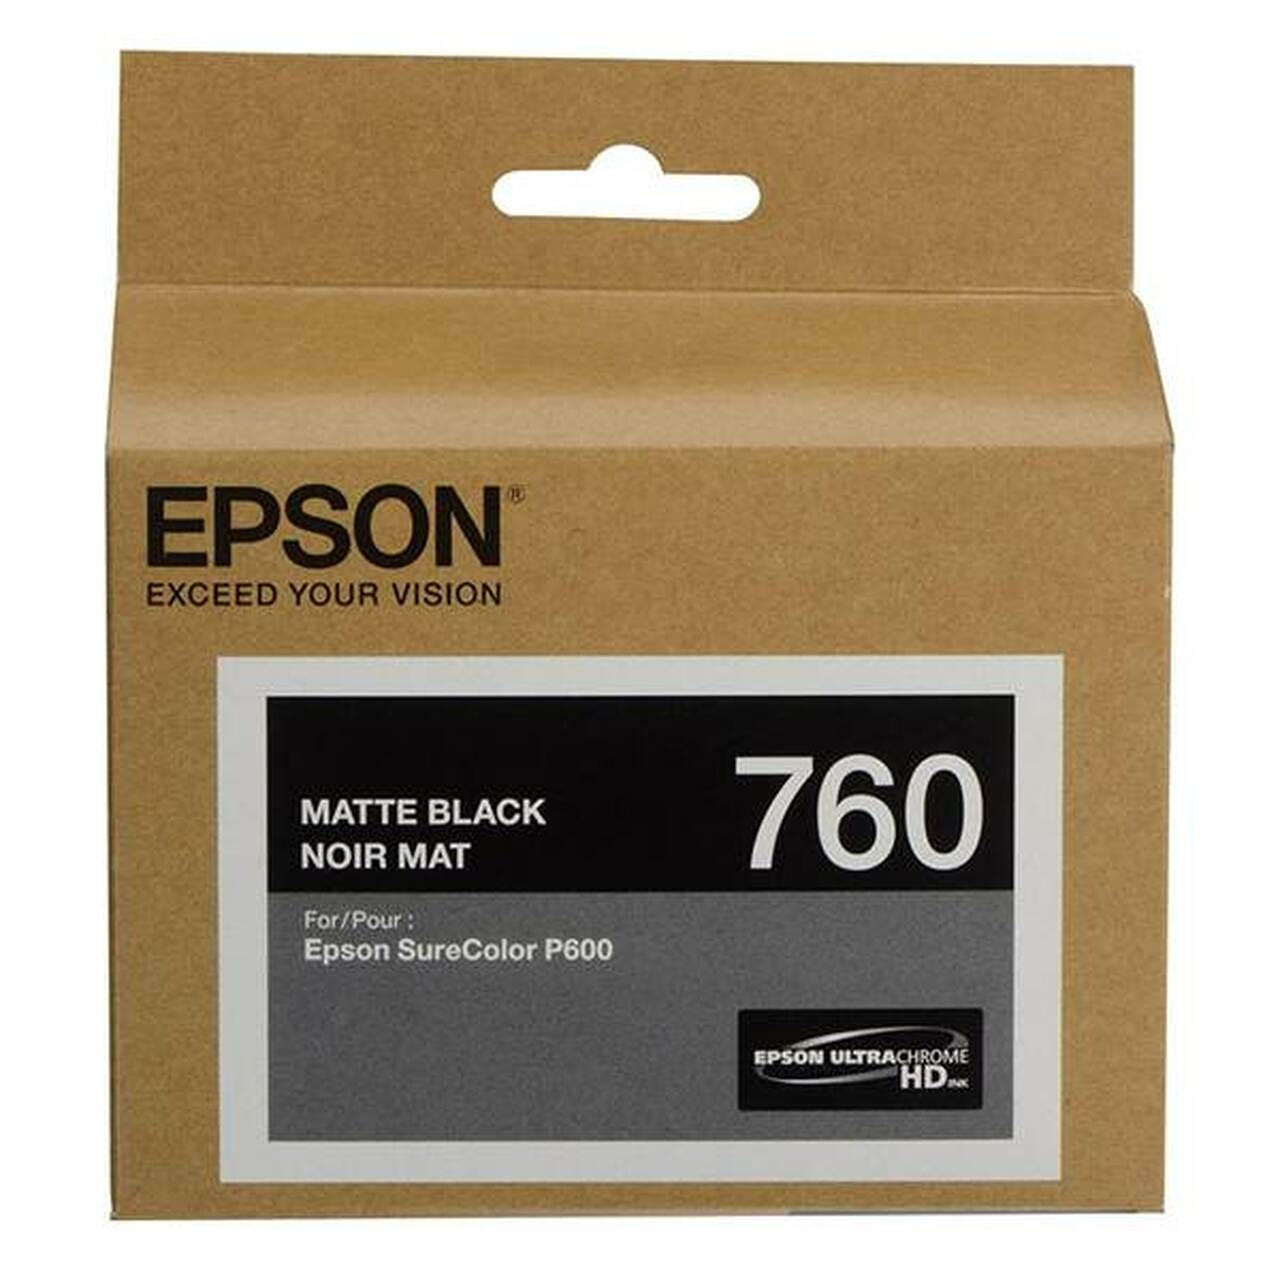 Image for Epson 760 UltraChrome HD Matte Black Ink Cartridge CX Computer Superstore